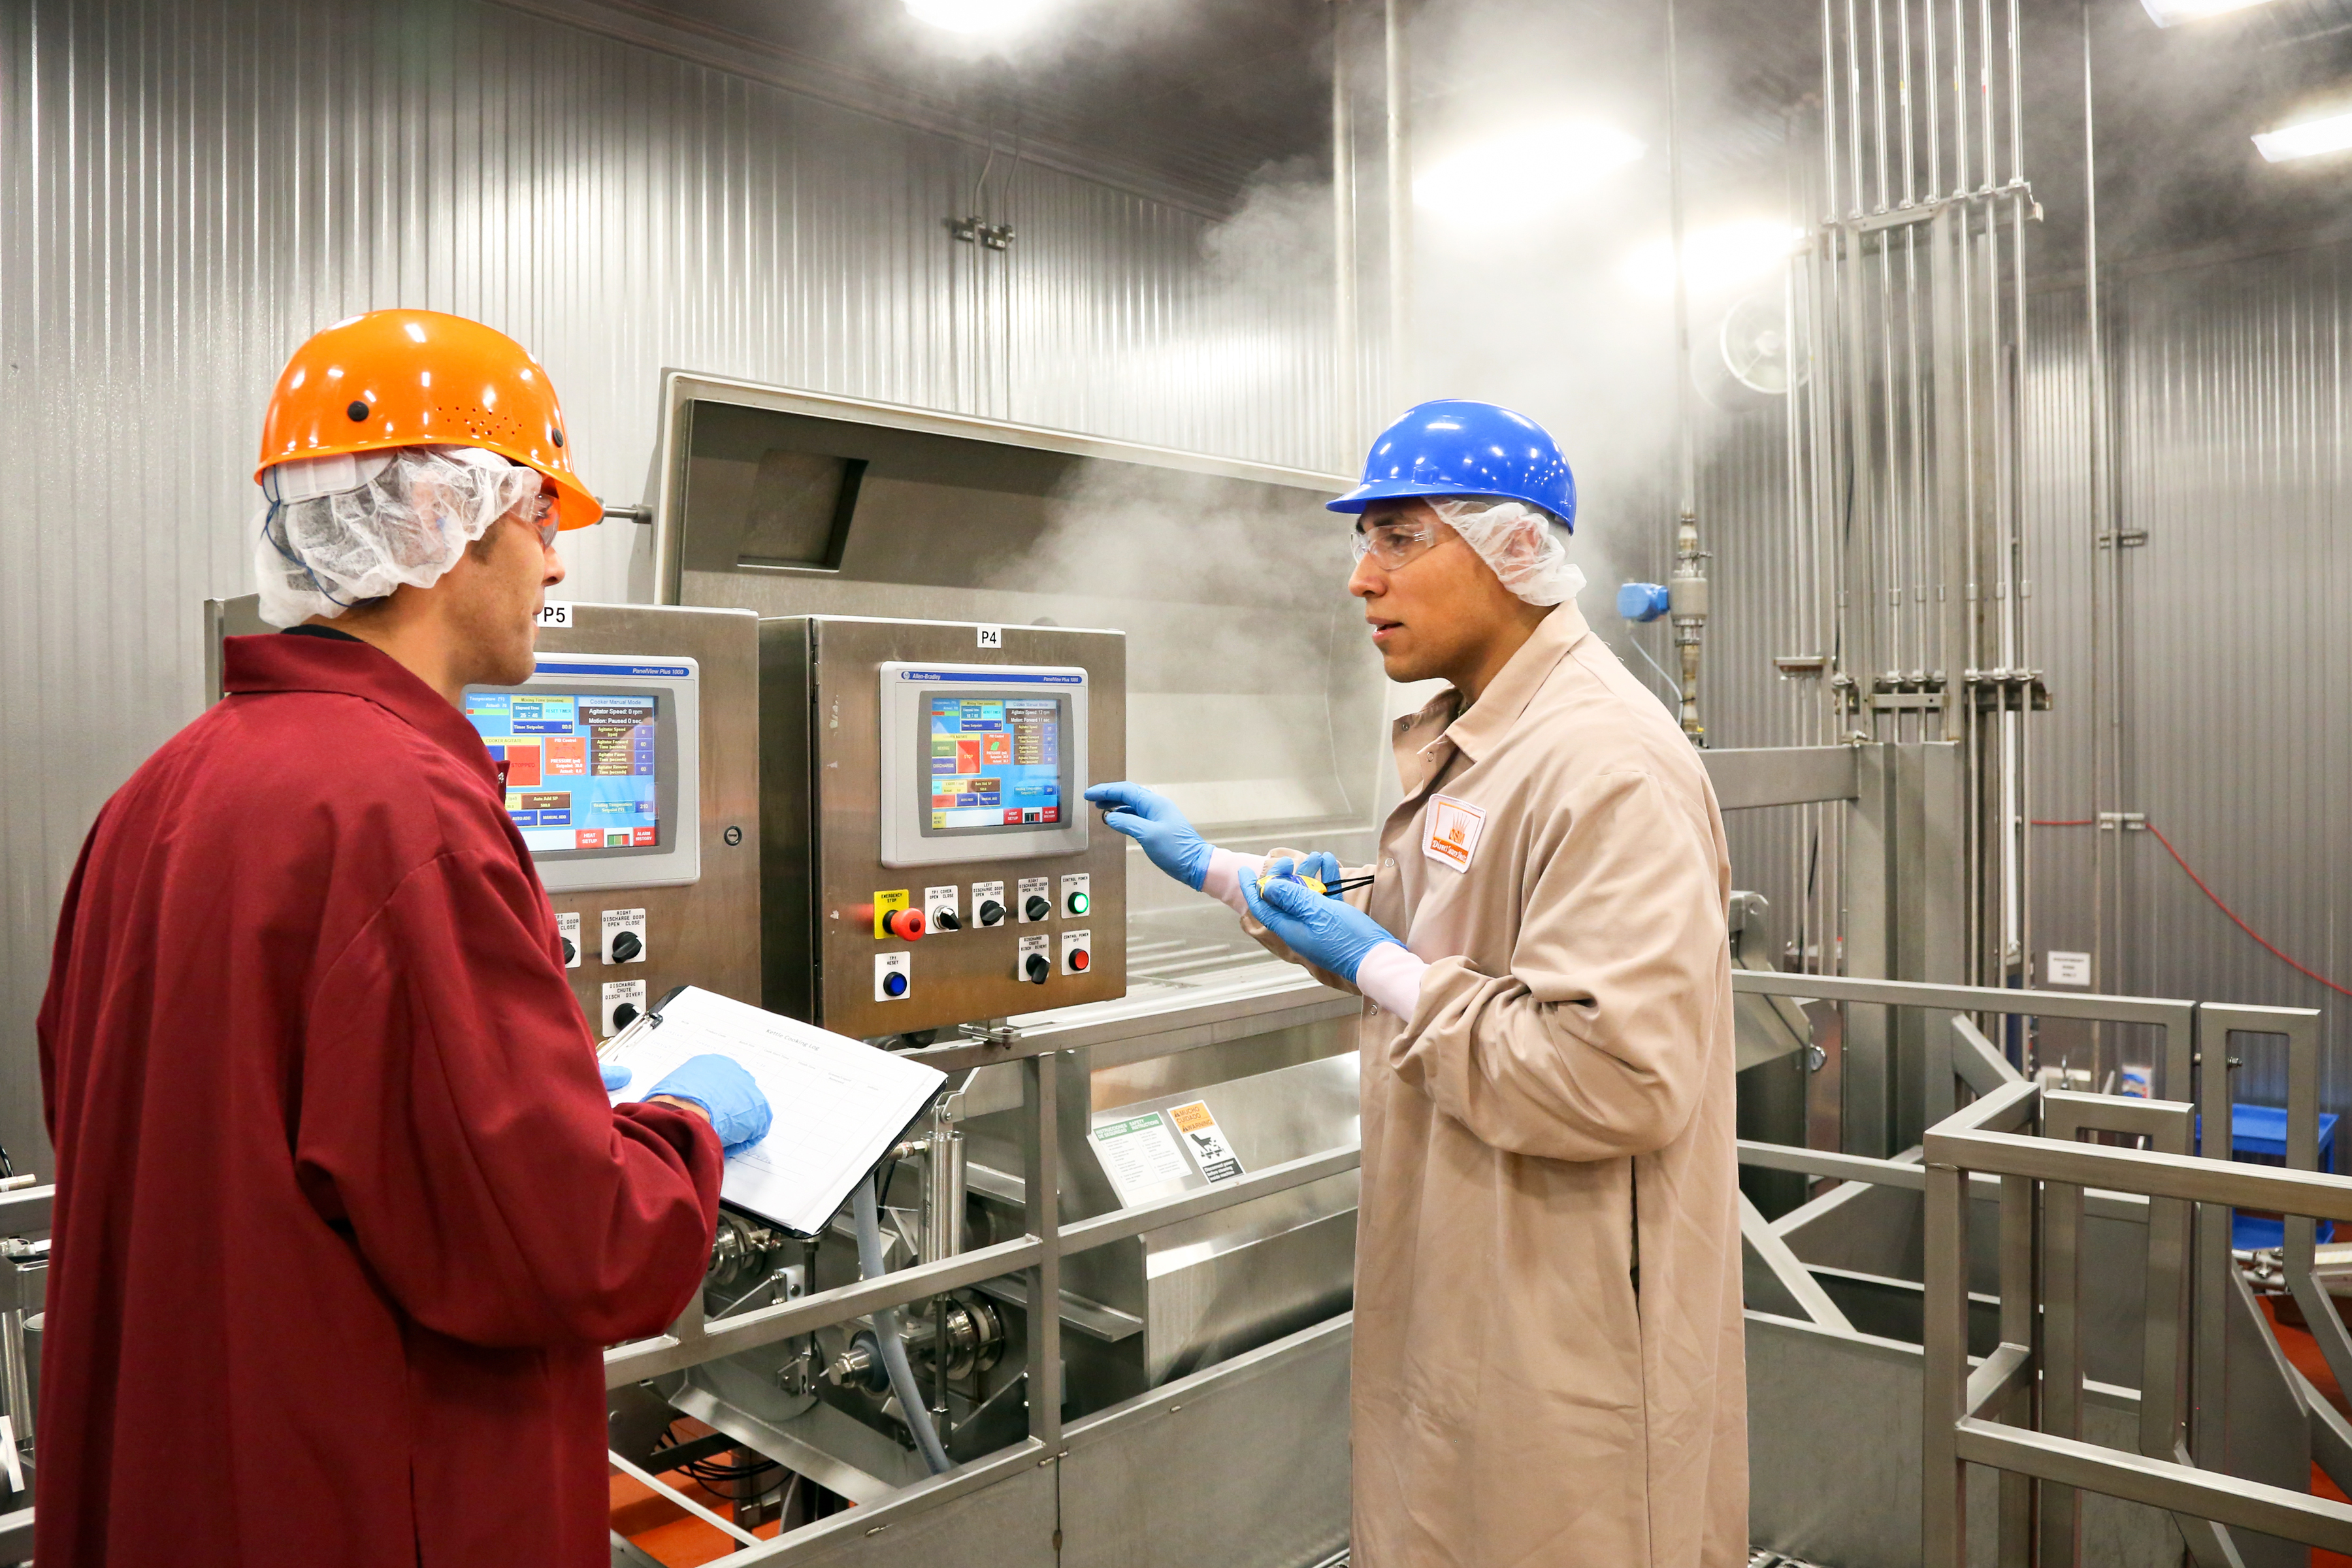 Labatt Food Service's new $28 million meat cooking plant is highly automated and uses customers' own recipes to cook, smoke and steam everything from barbacoa to brisket to turkeys to tamales. (Photo by Joan Snow)